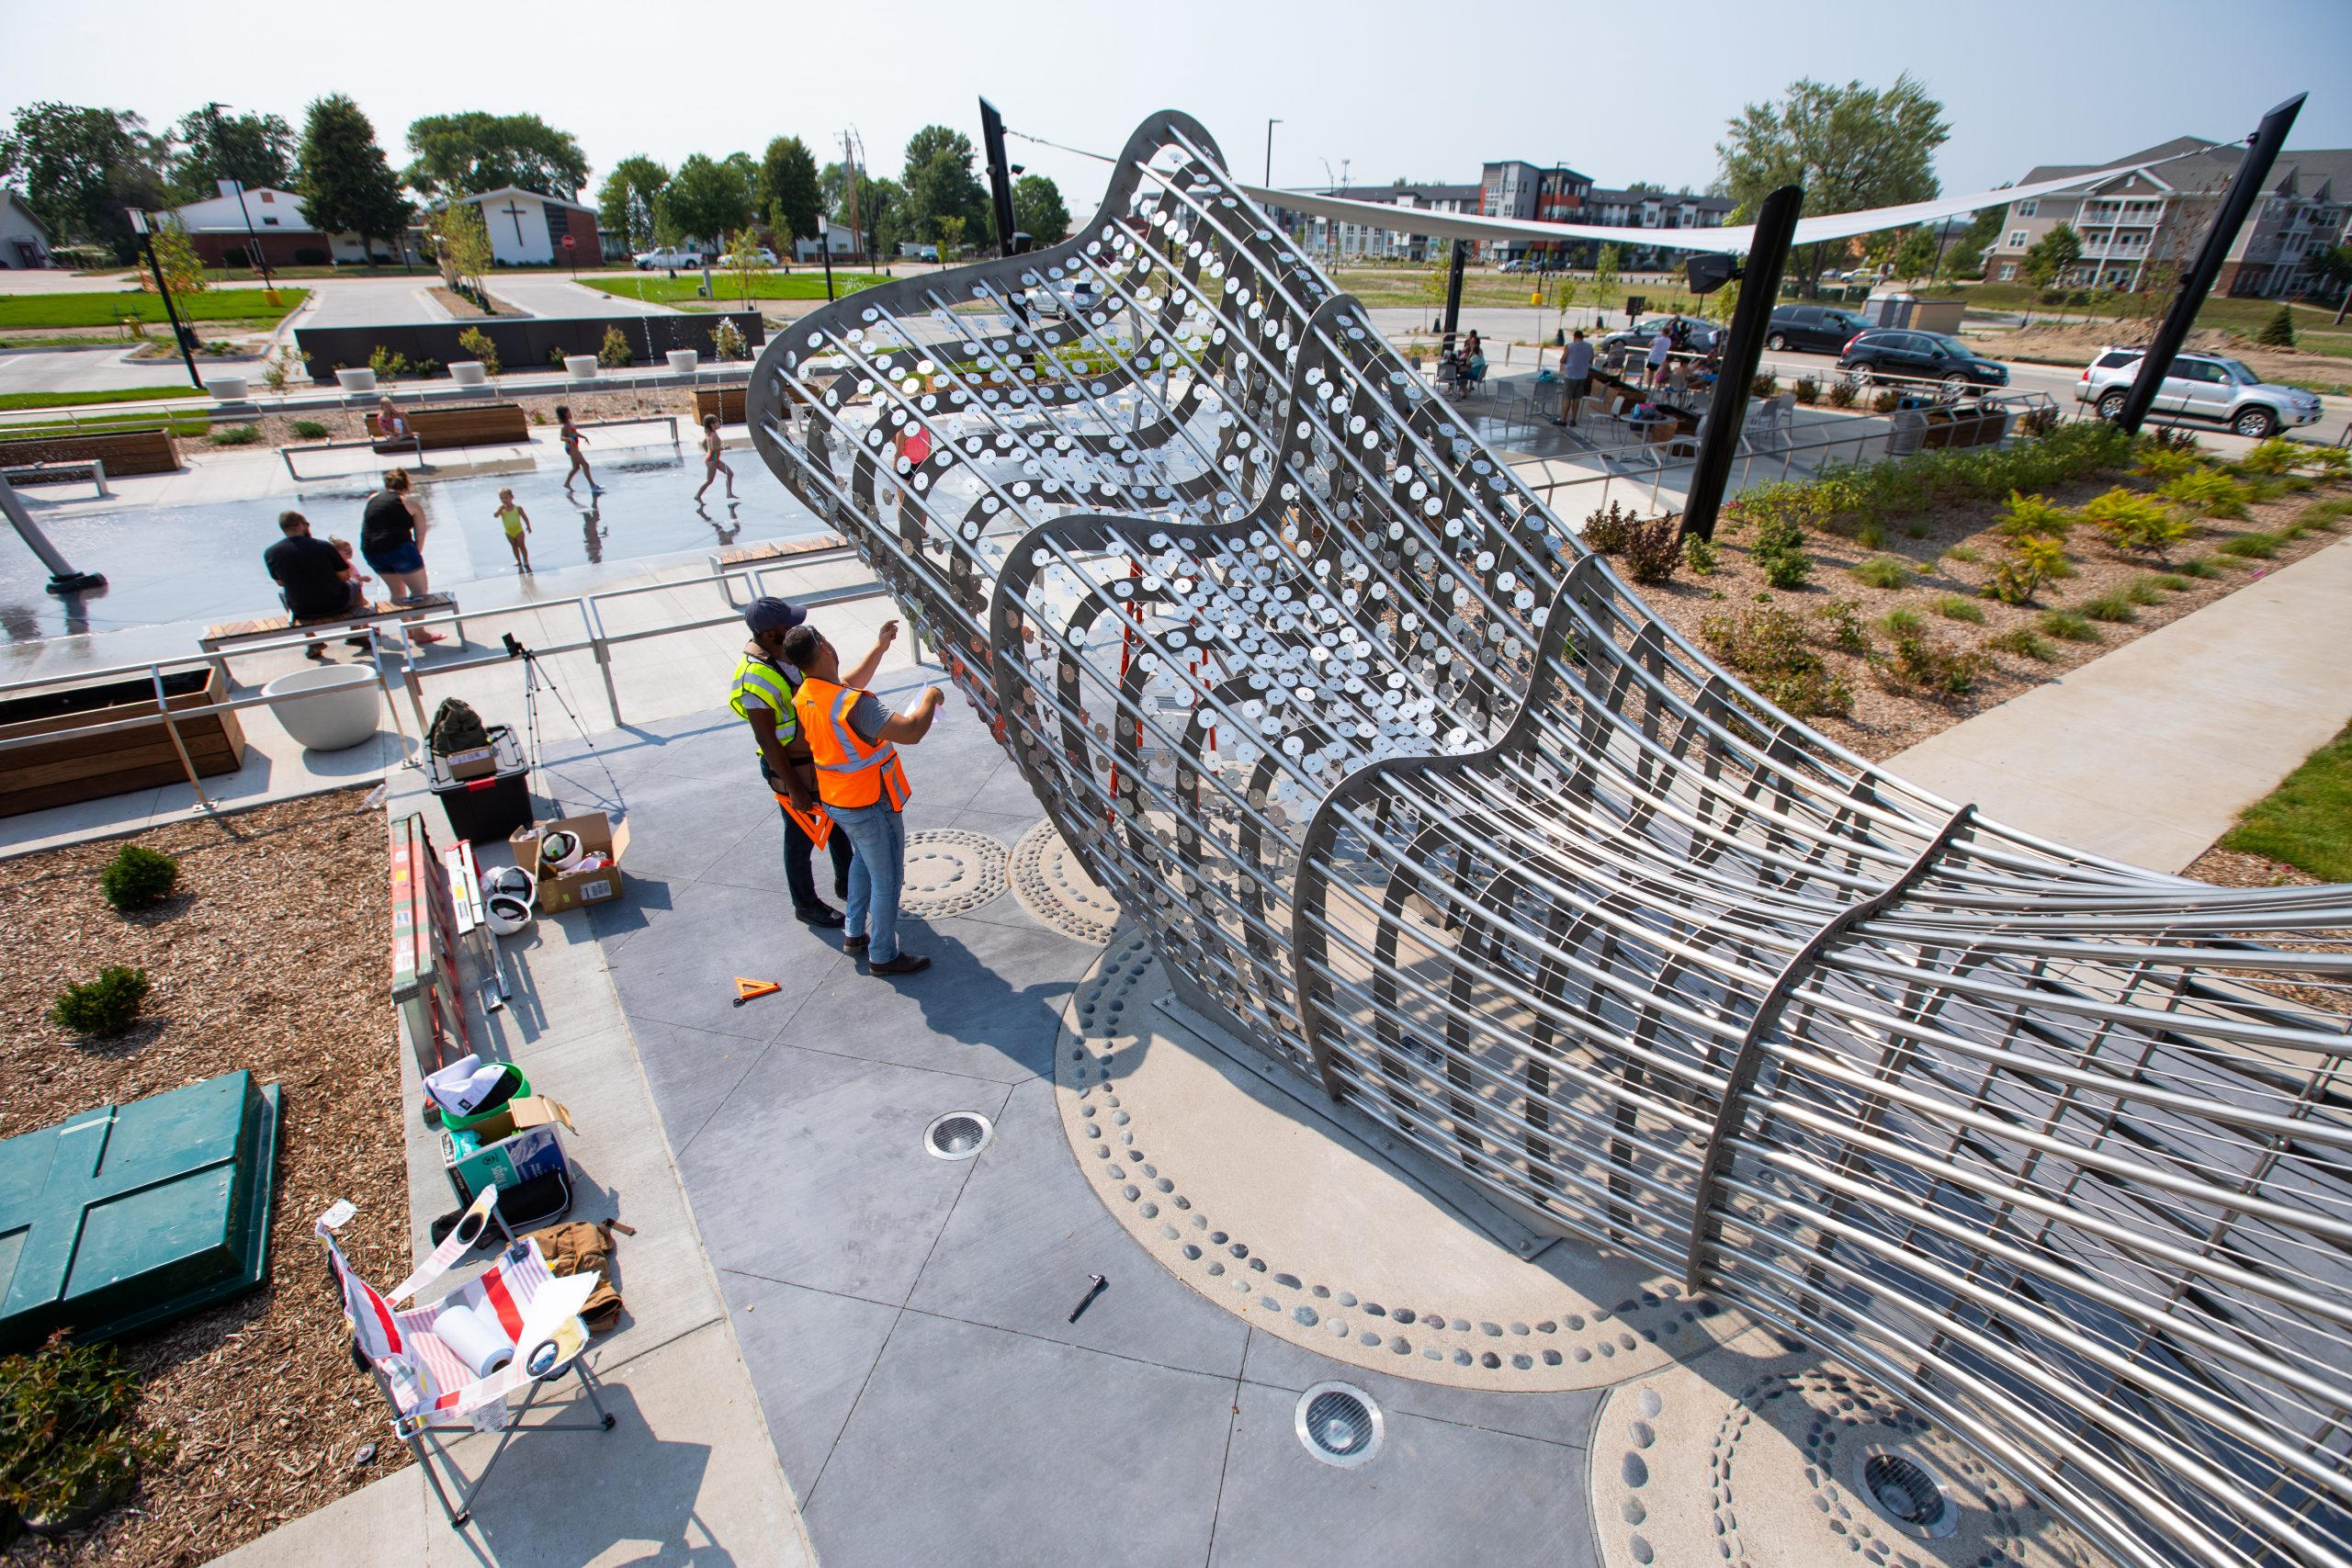 """Installation of kinetic scales on the College of Design art installation, """"Ripples"""" at the Johnston Town Center on July 27, 2021. Reinaldo Correa-Diaz and Ayo Iyanalu work together on the kinetic scales installation. (Christopher Gannon/Iowa State University)"""